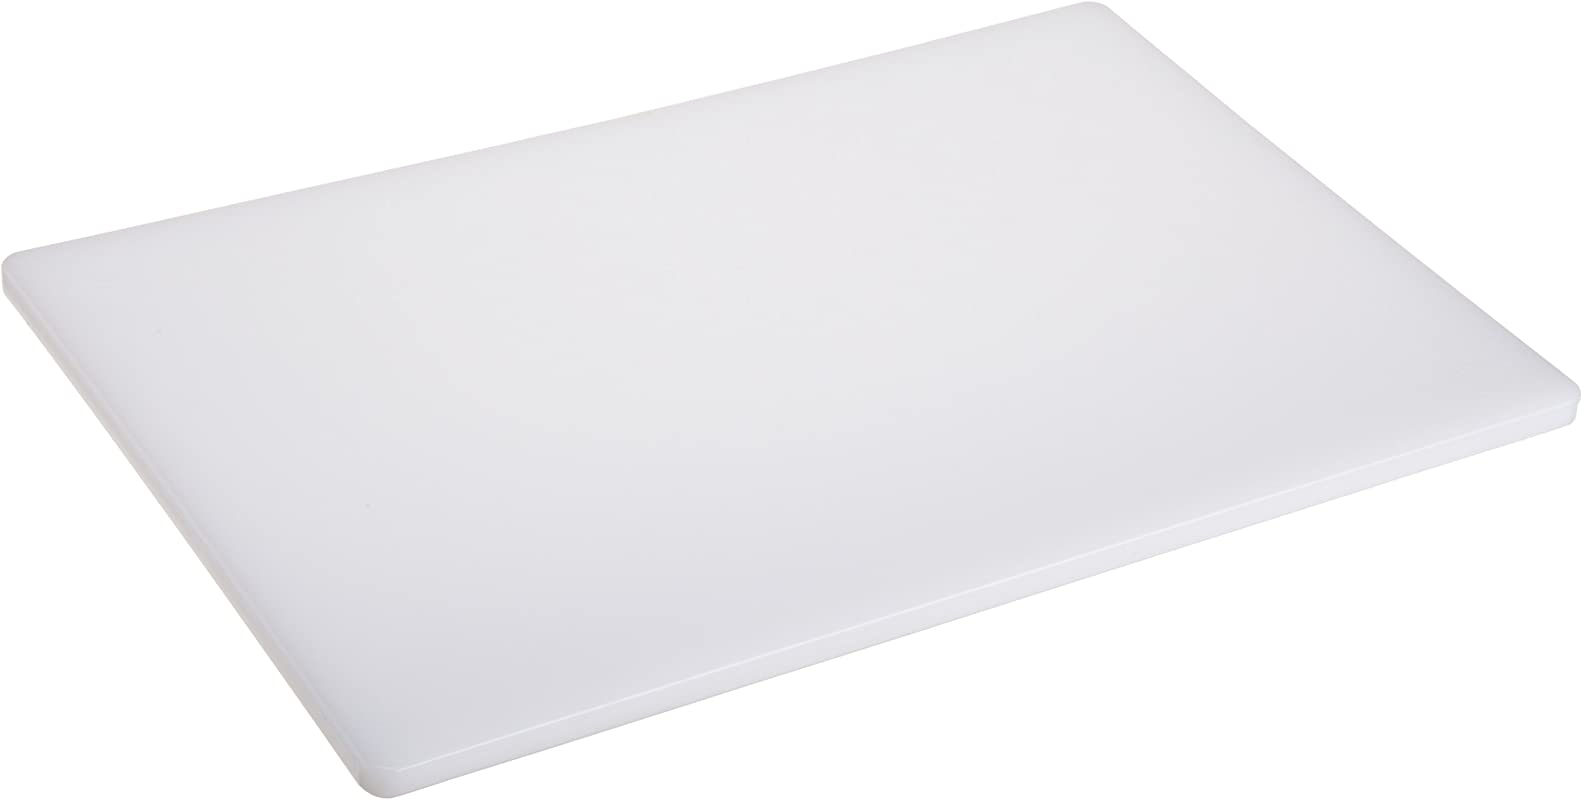 Stanton Trading 12 By 18 By 1 2 Inch Cutting Board White